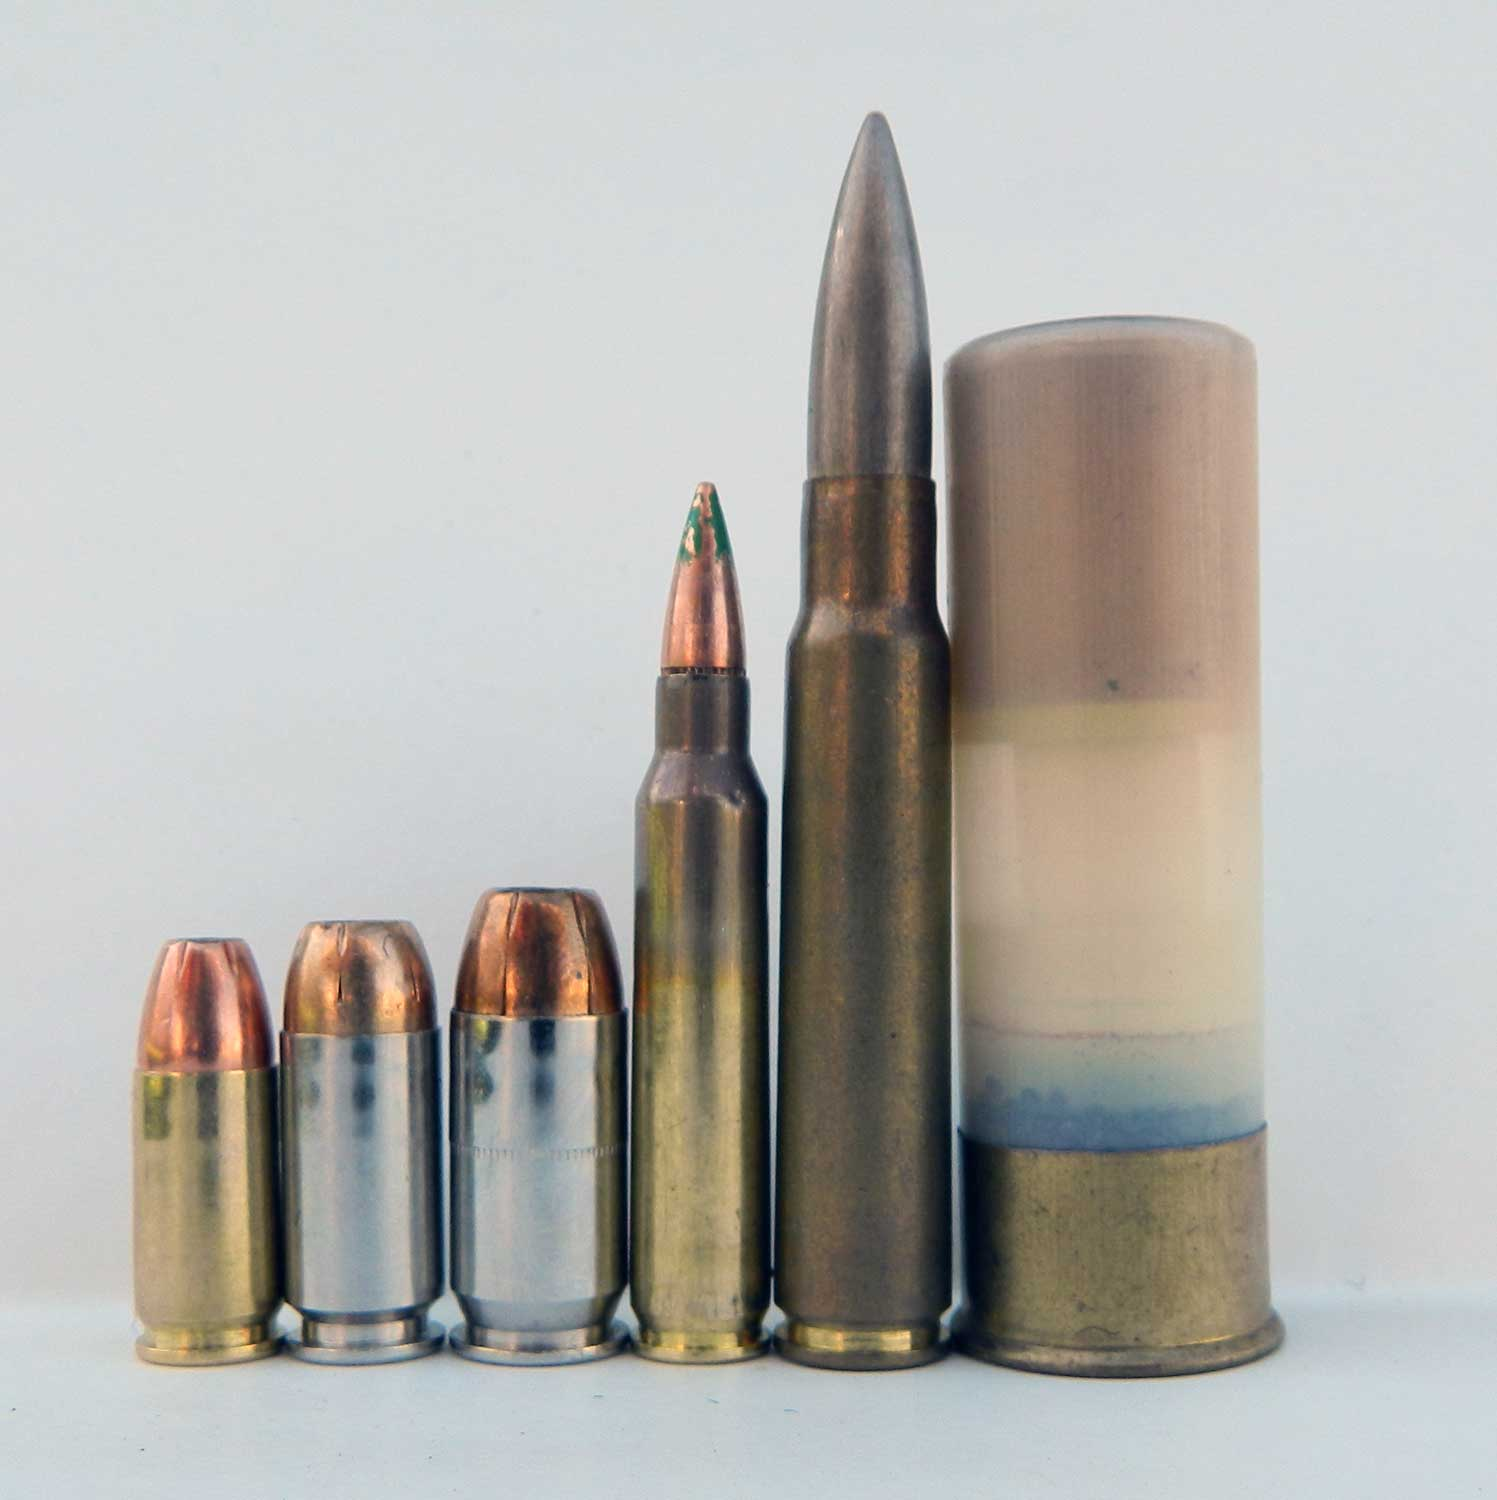 Multiple cartridges ranging from 9mm to 12 gauge